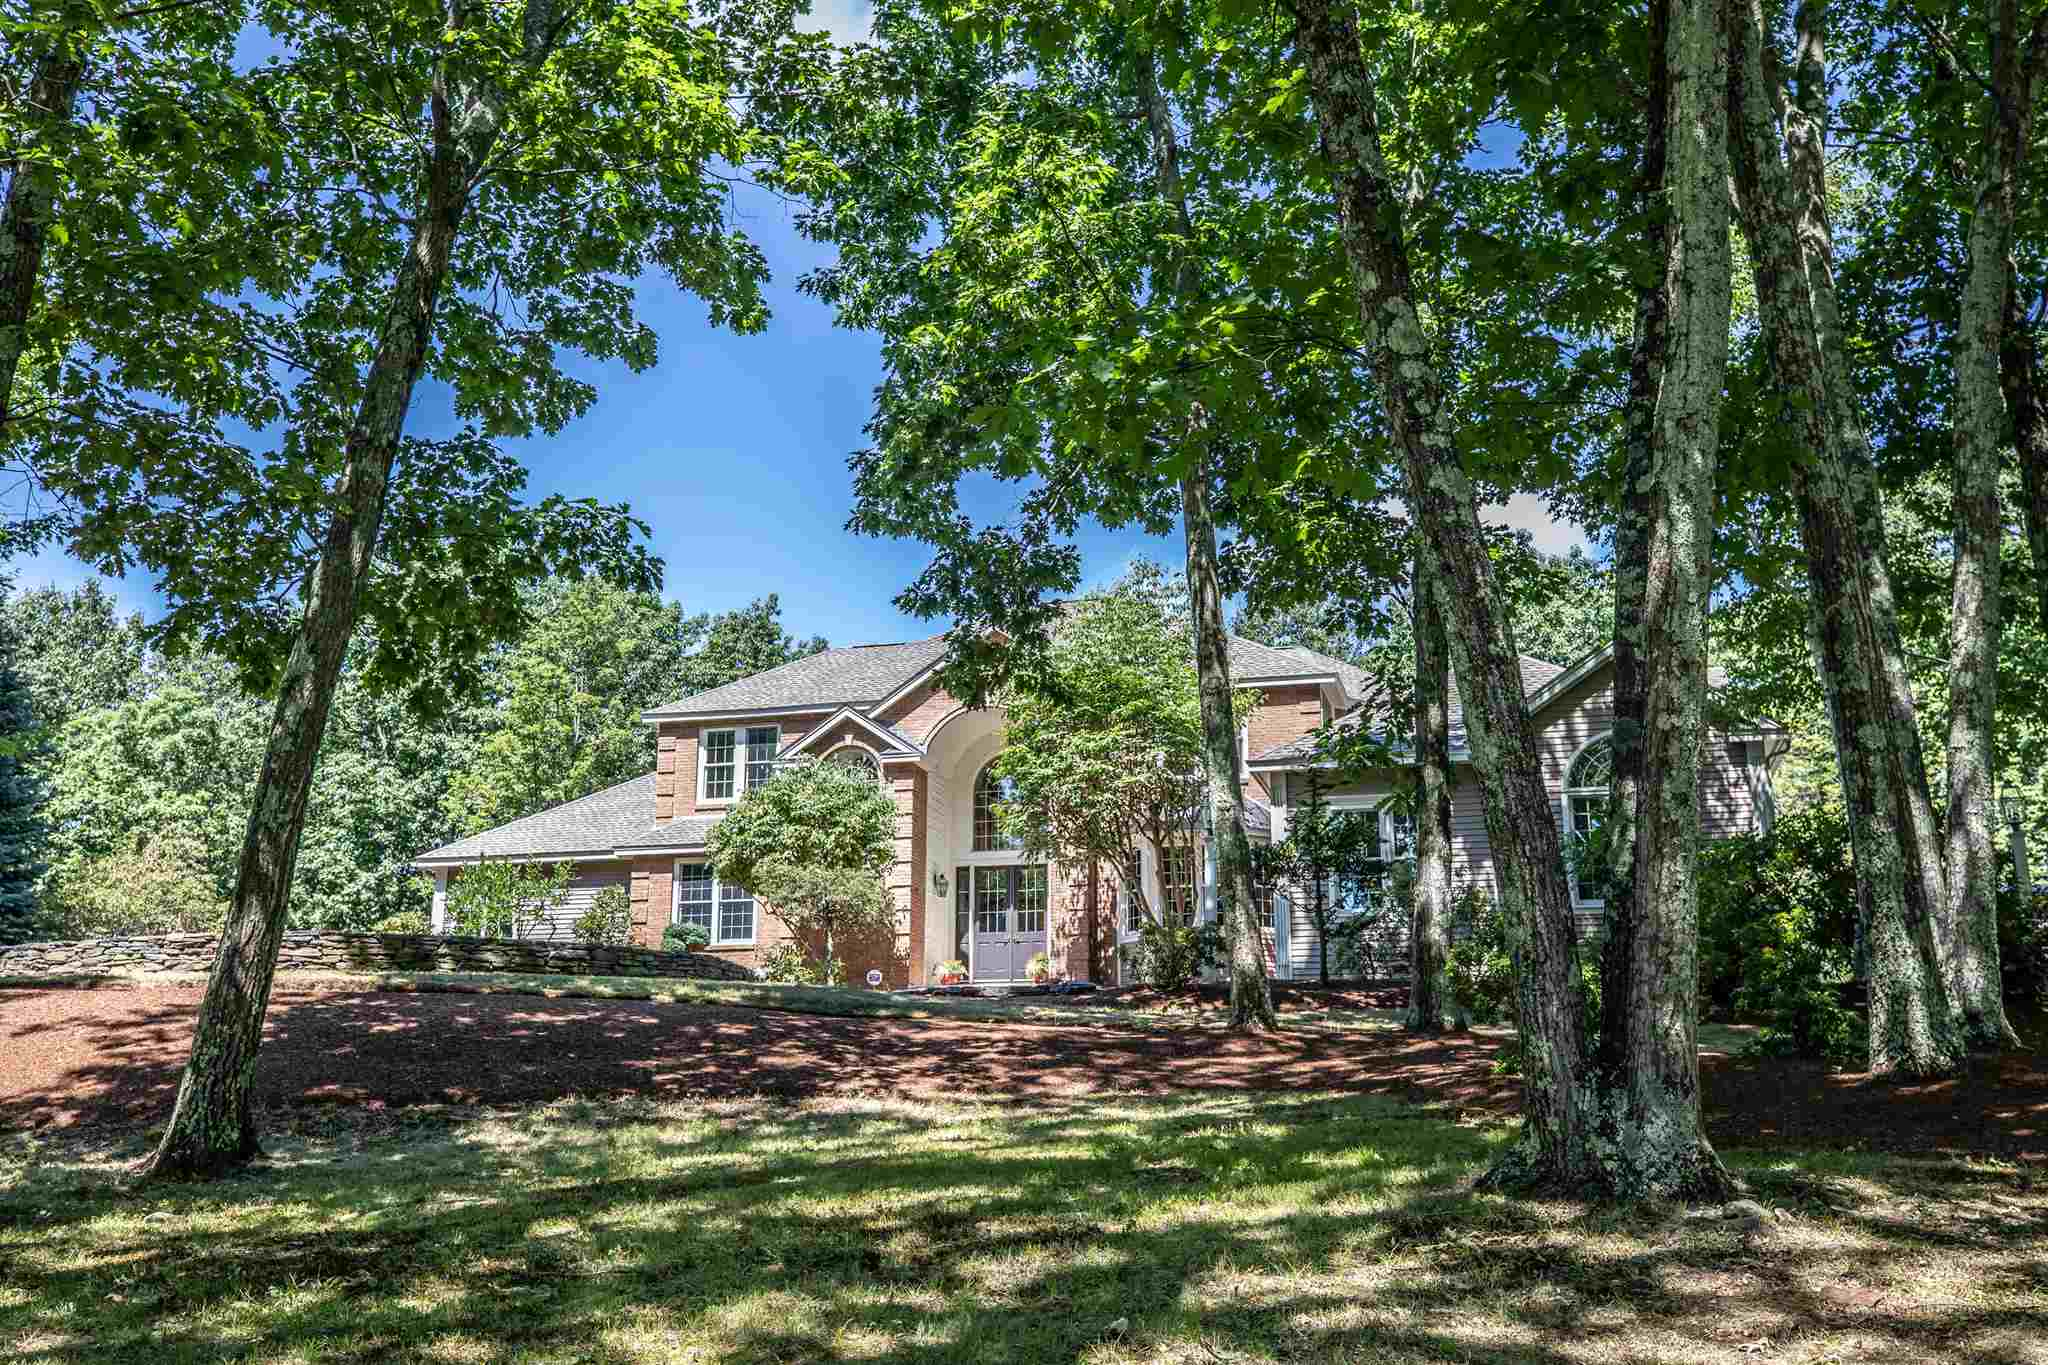 MLS 4820710: 15 Floral Street, Windham NH